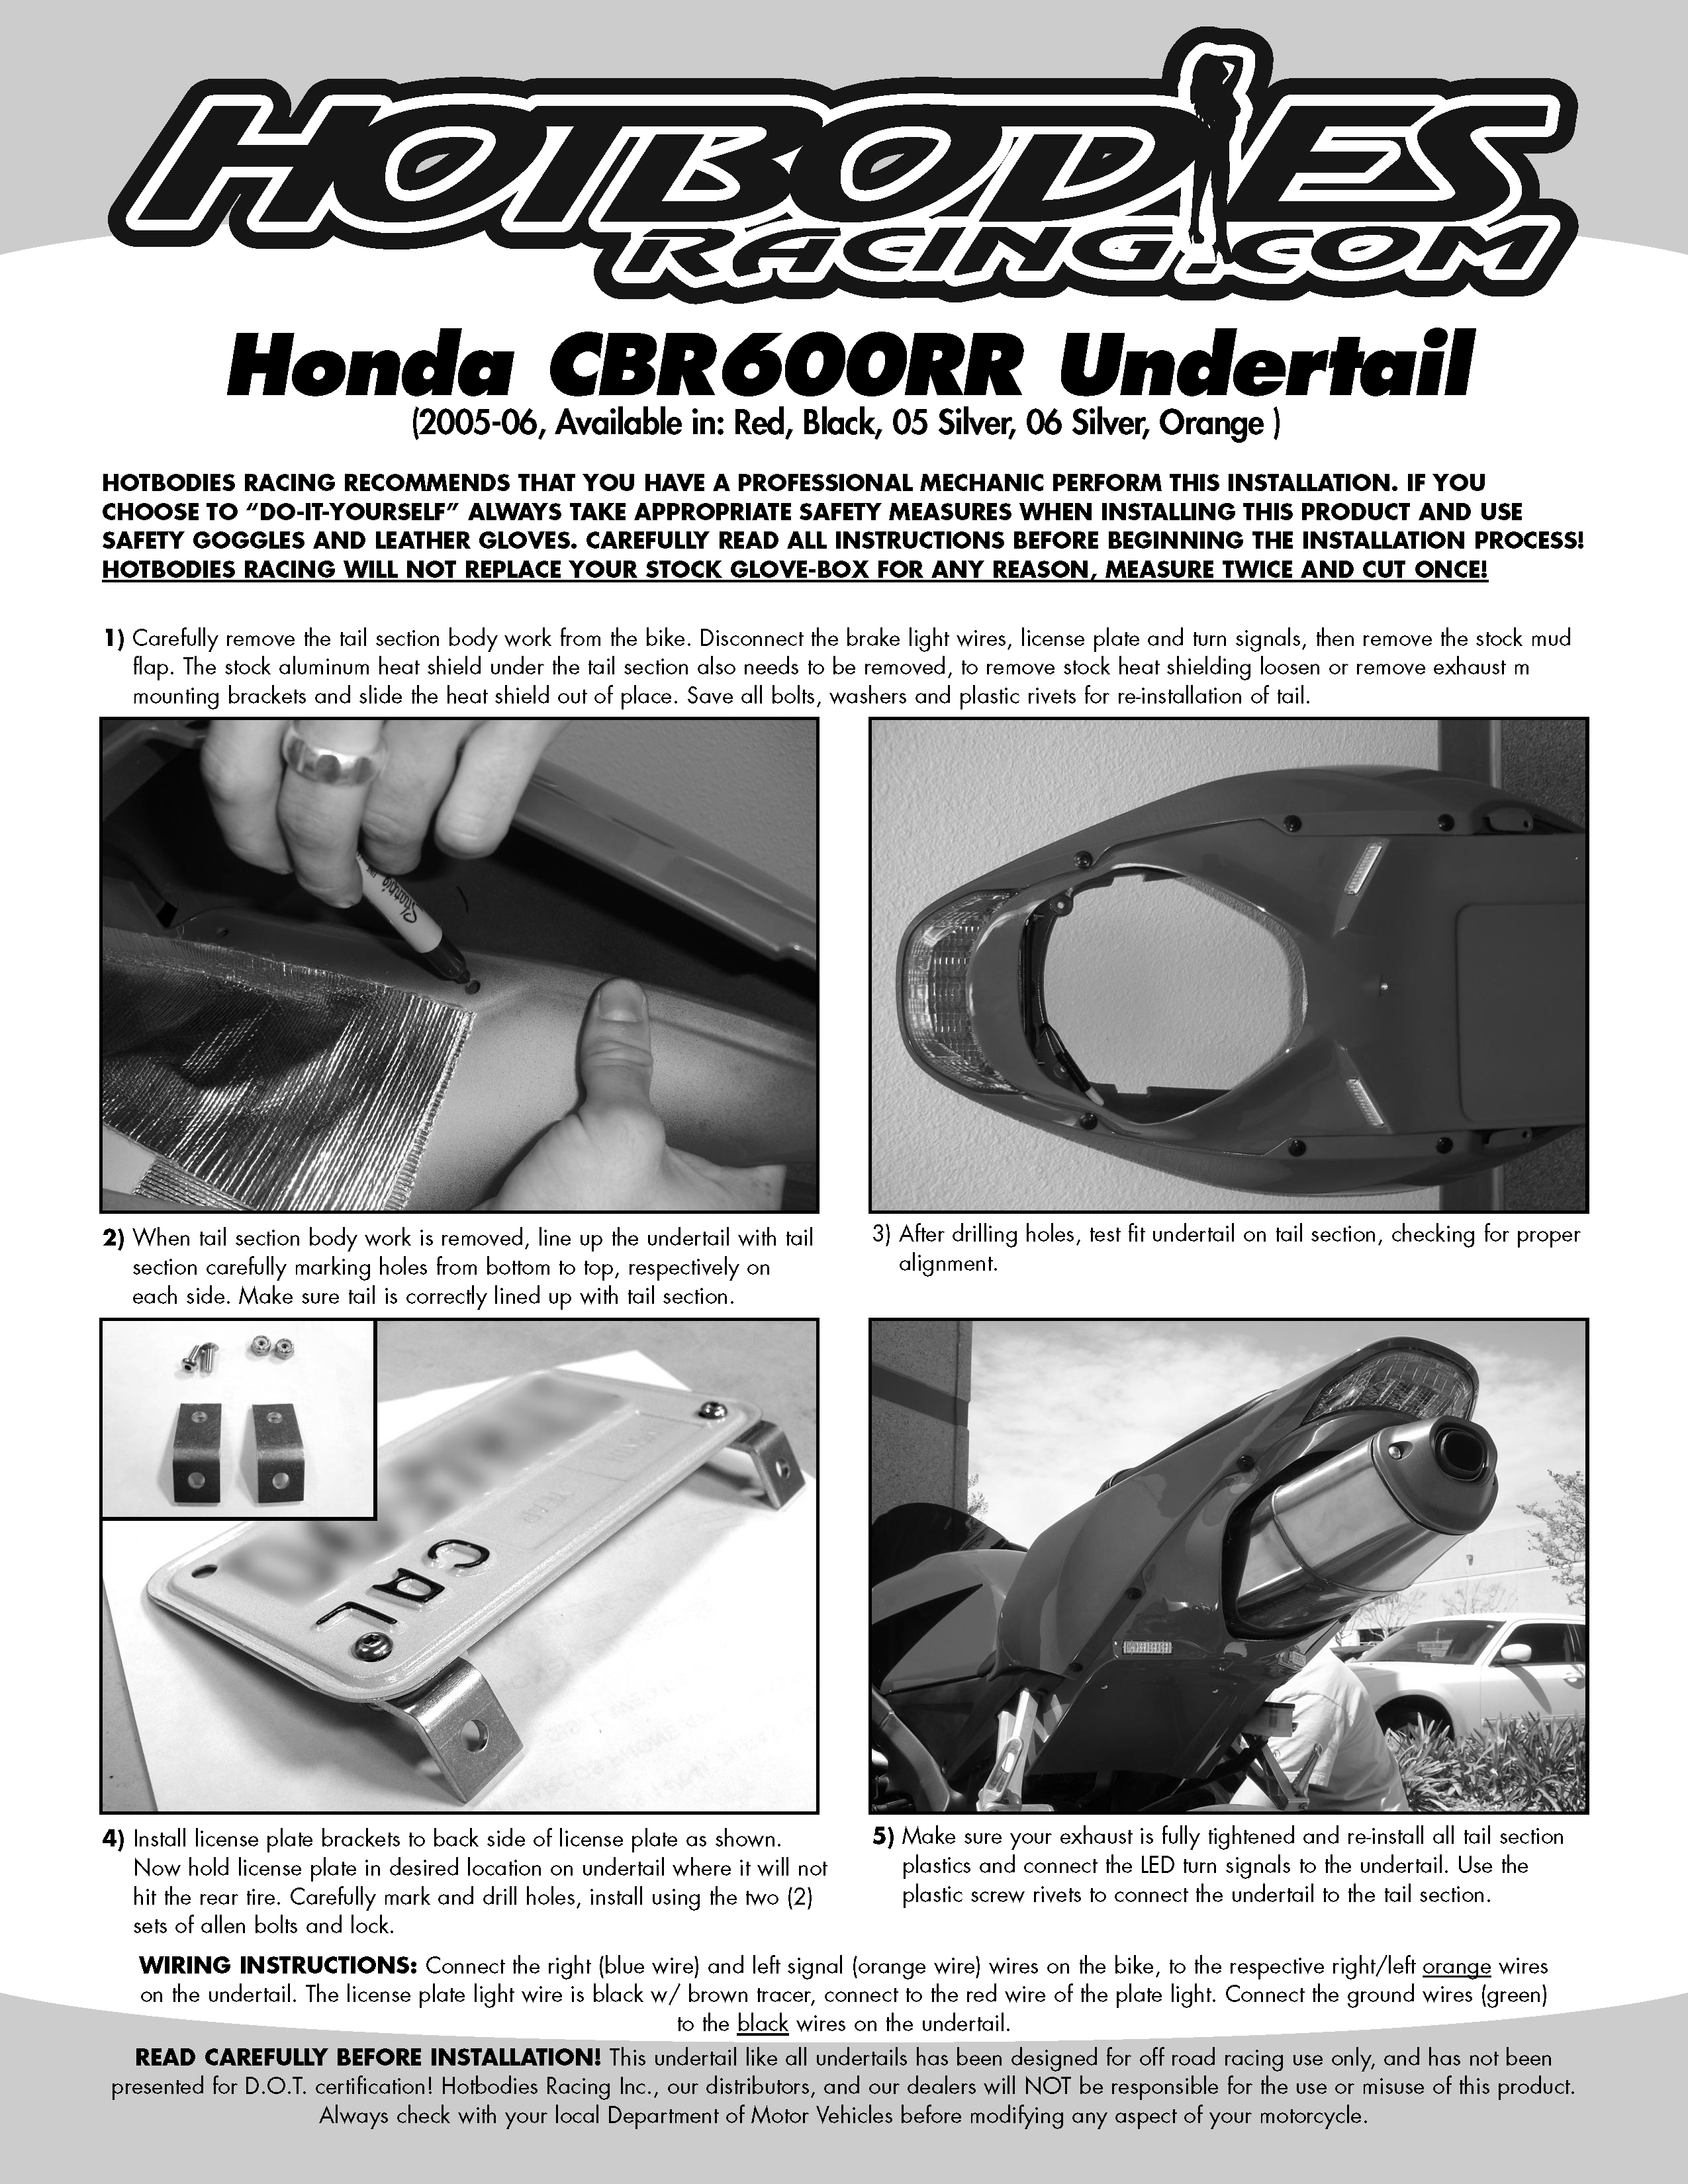 Cbr600rr undertail 2005 15 hot bodies racing cbr600rr 2005 06 undertail installation asfbconference2016 Gallery